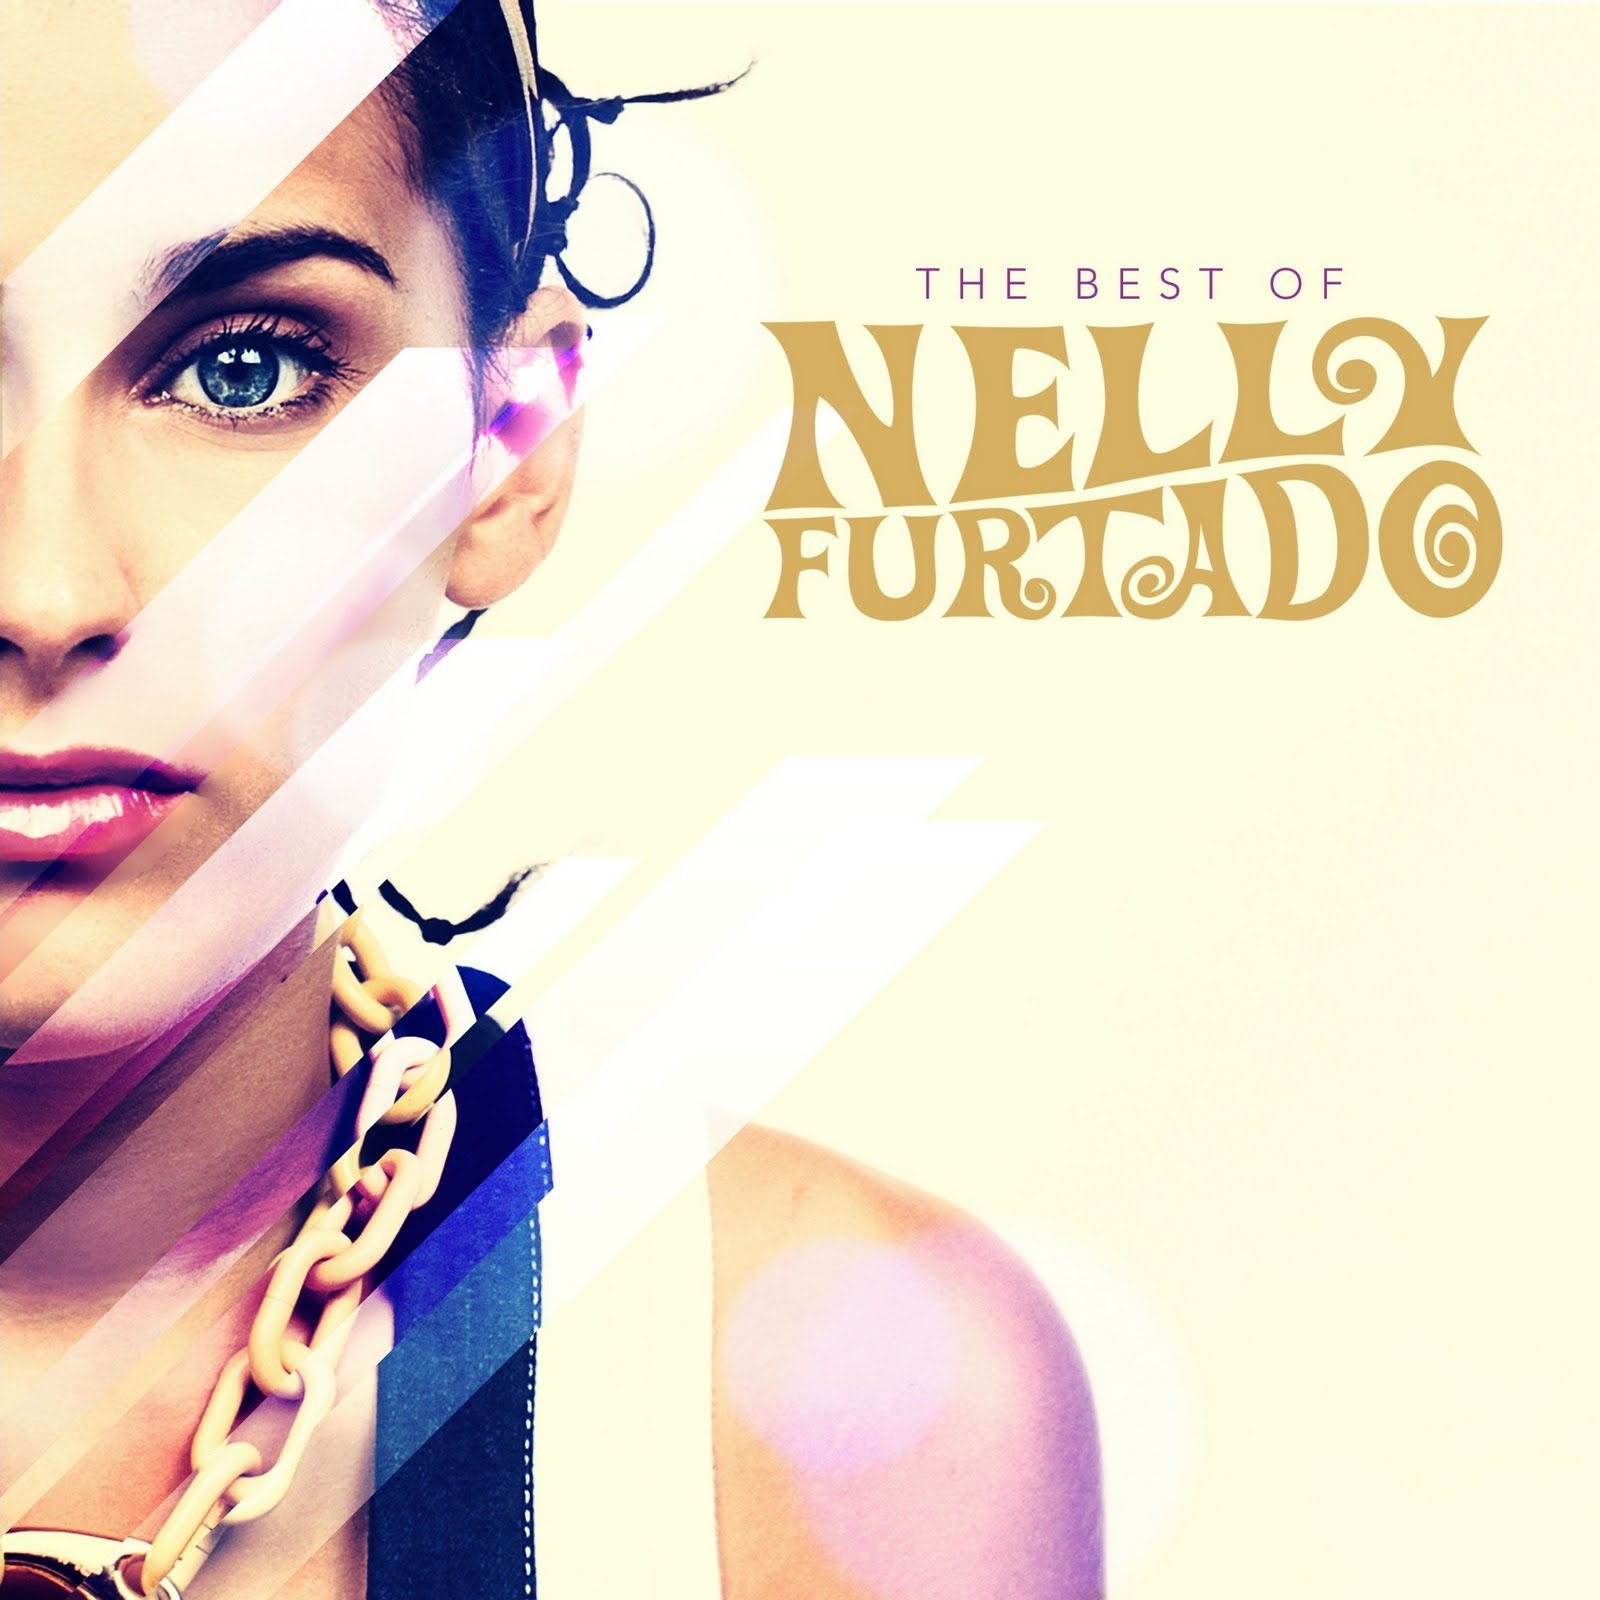 http://4.bp.blogspot.com/_bq9TcMaVMGw/TRjgfYYz9AI/AAAAAAAAE-I/HxNhjBkrbaE/s1600/The+best+of+Nelly+Furtado.jpg